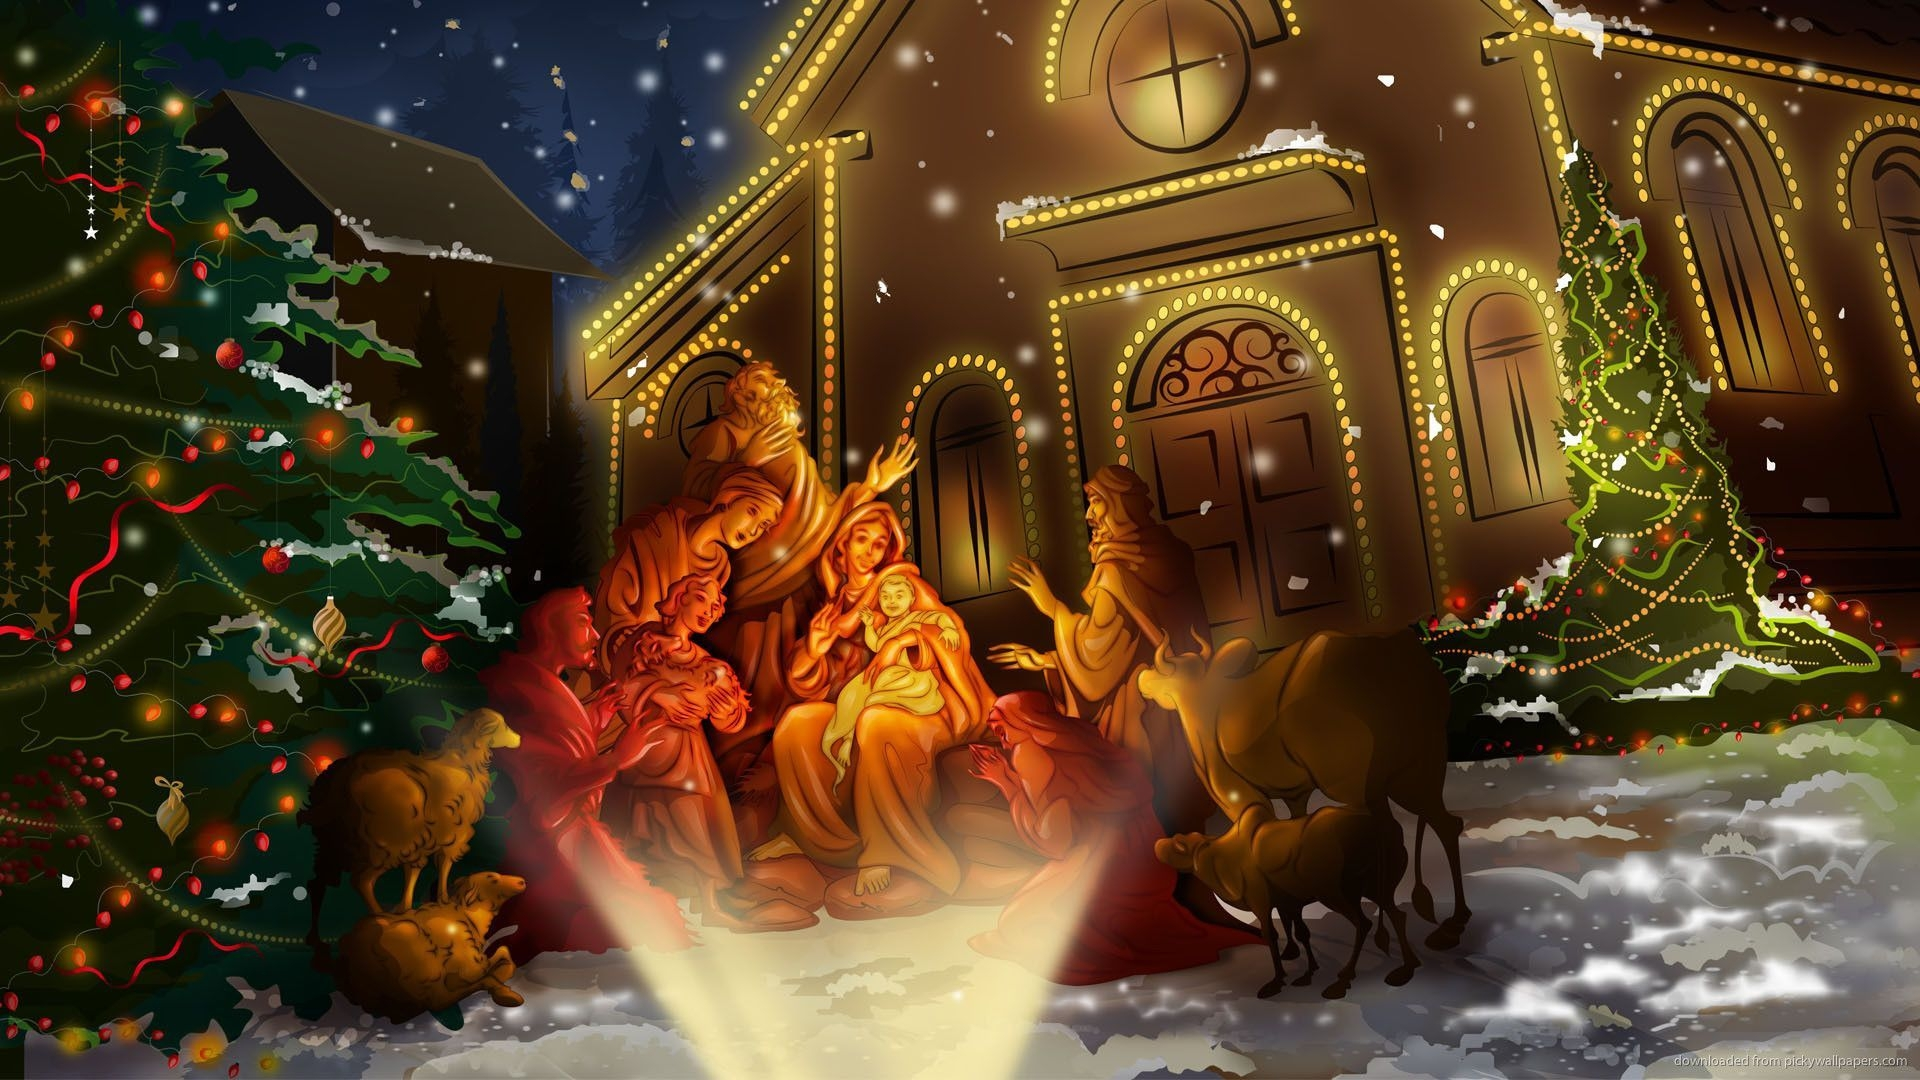 christmas scene wallpaper download hq